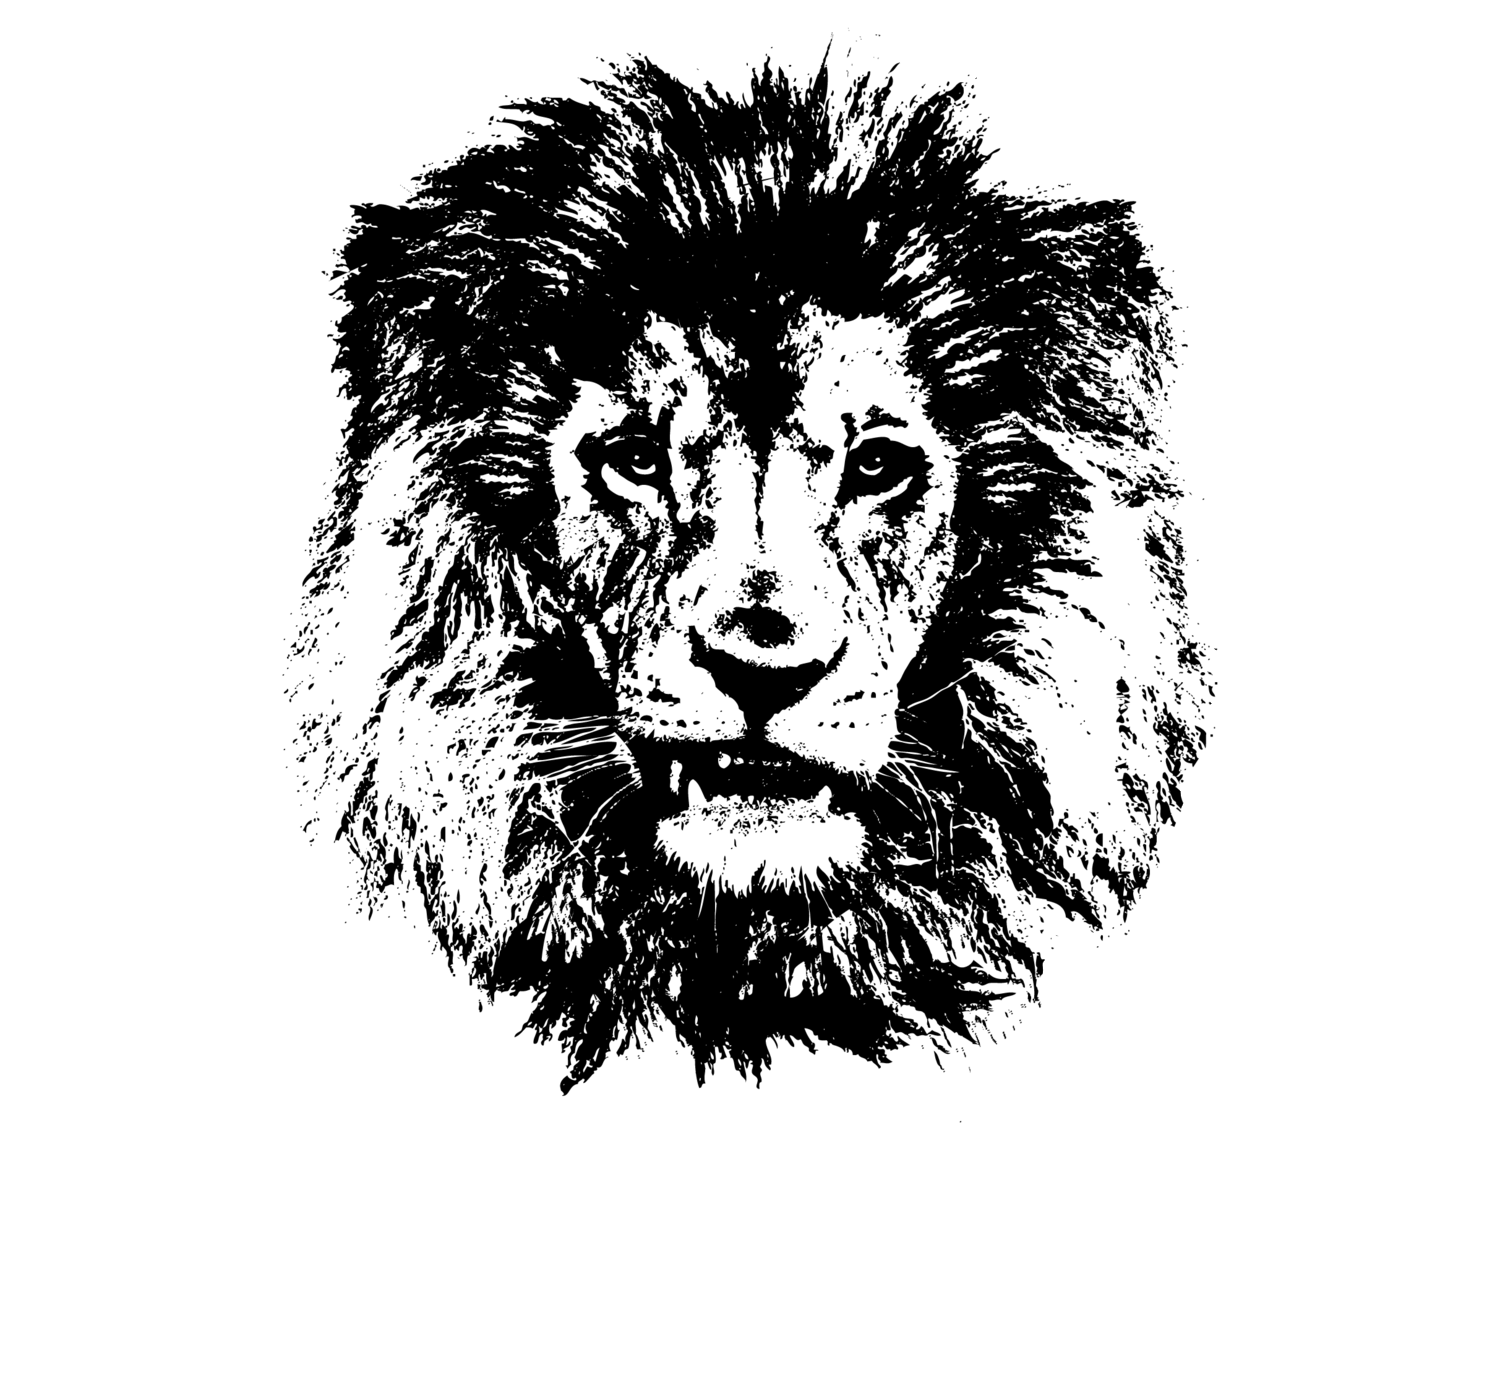 CONCRETE JUNGLE GRIT